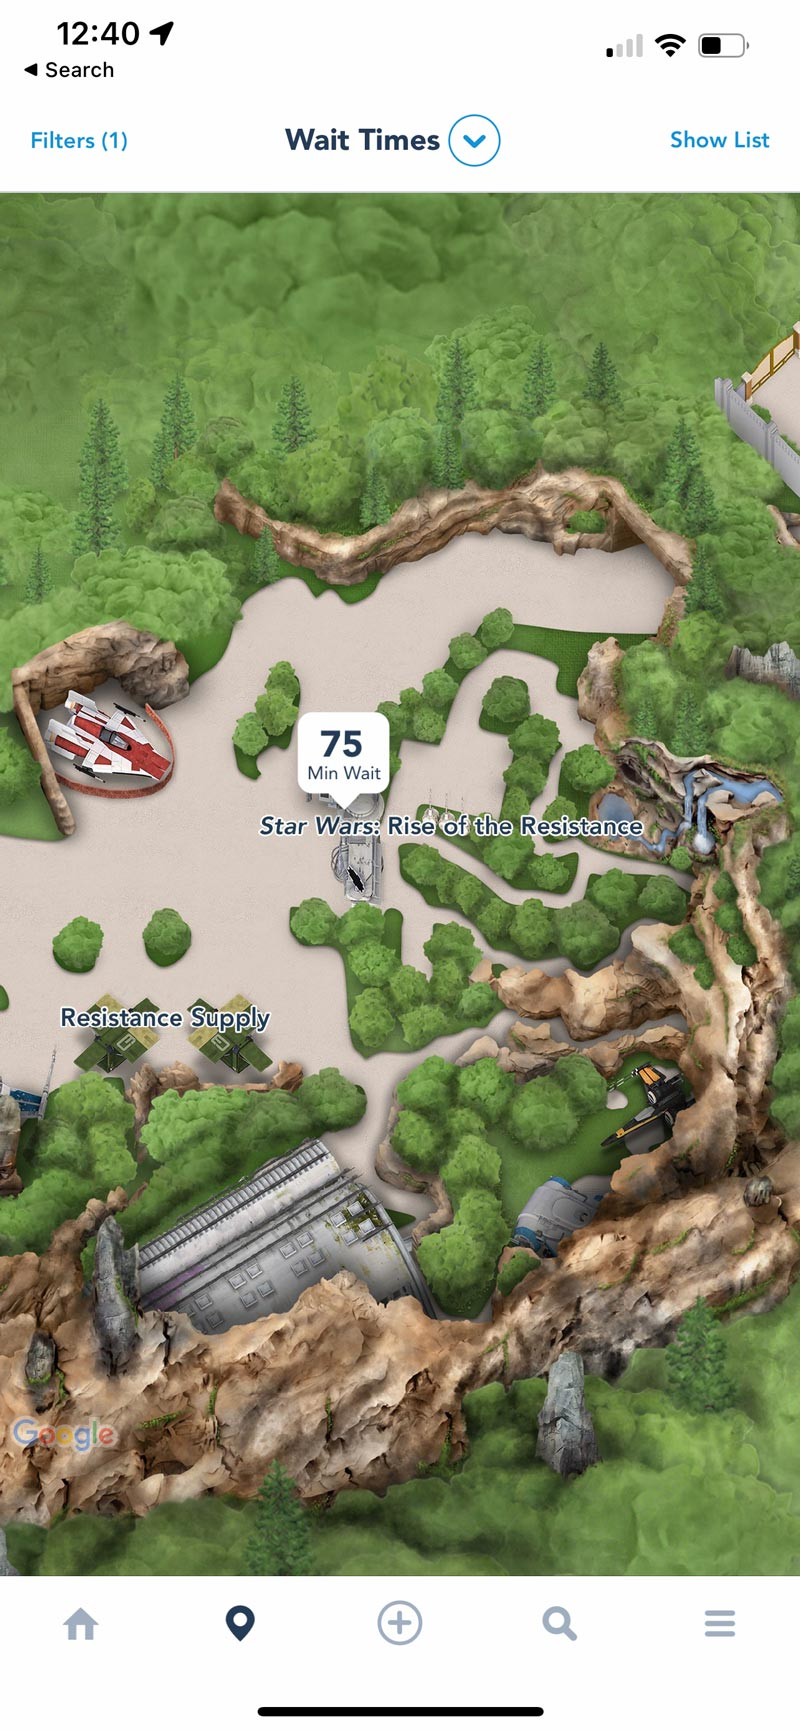 Rise of the Resistance - Wait Time - Disney World App